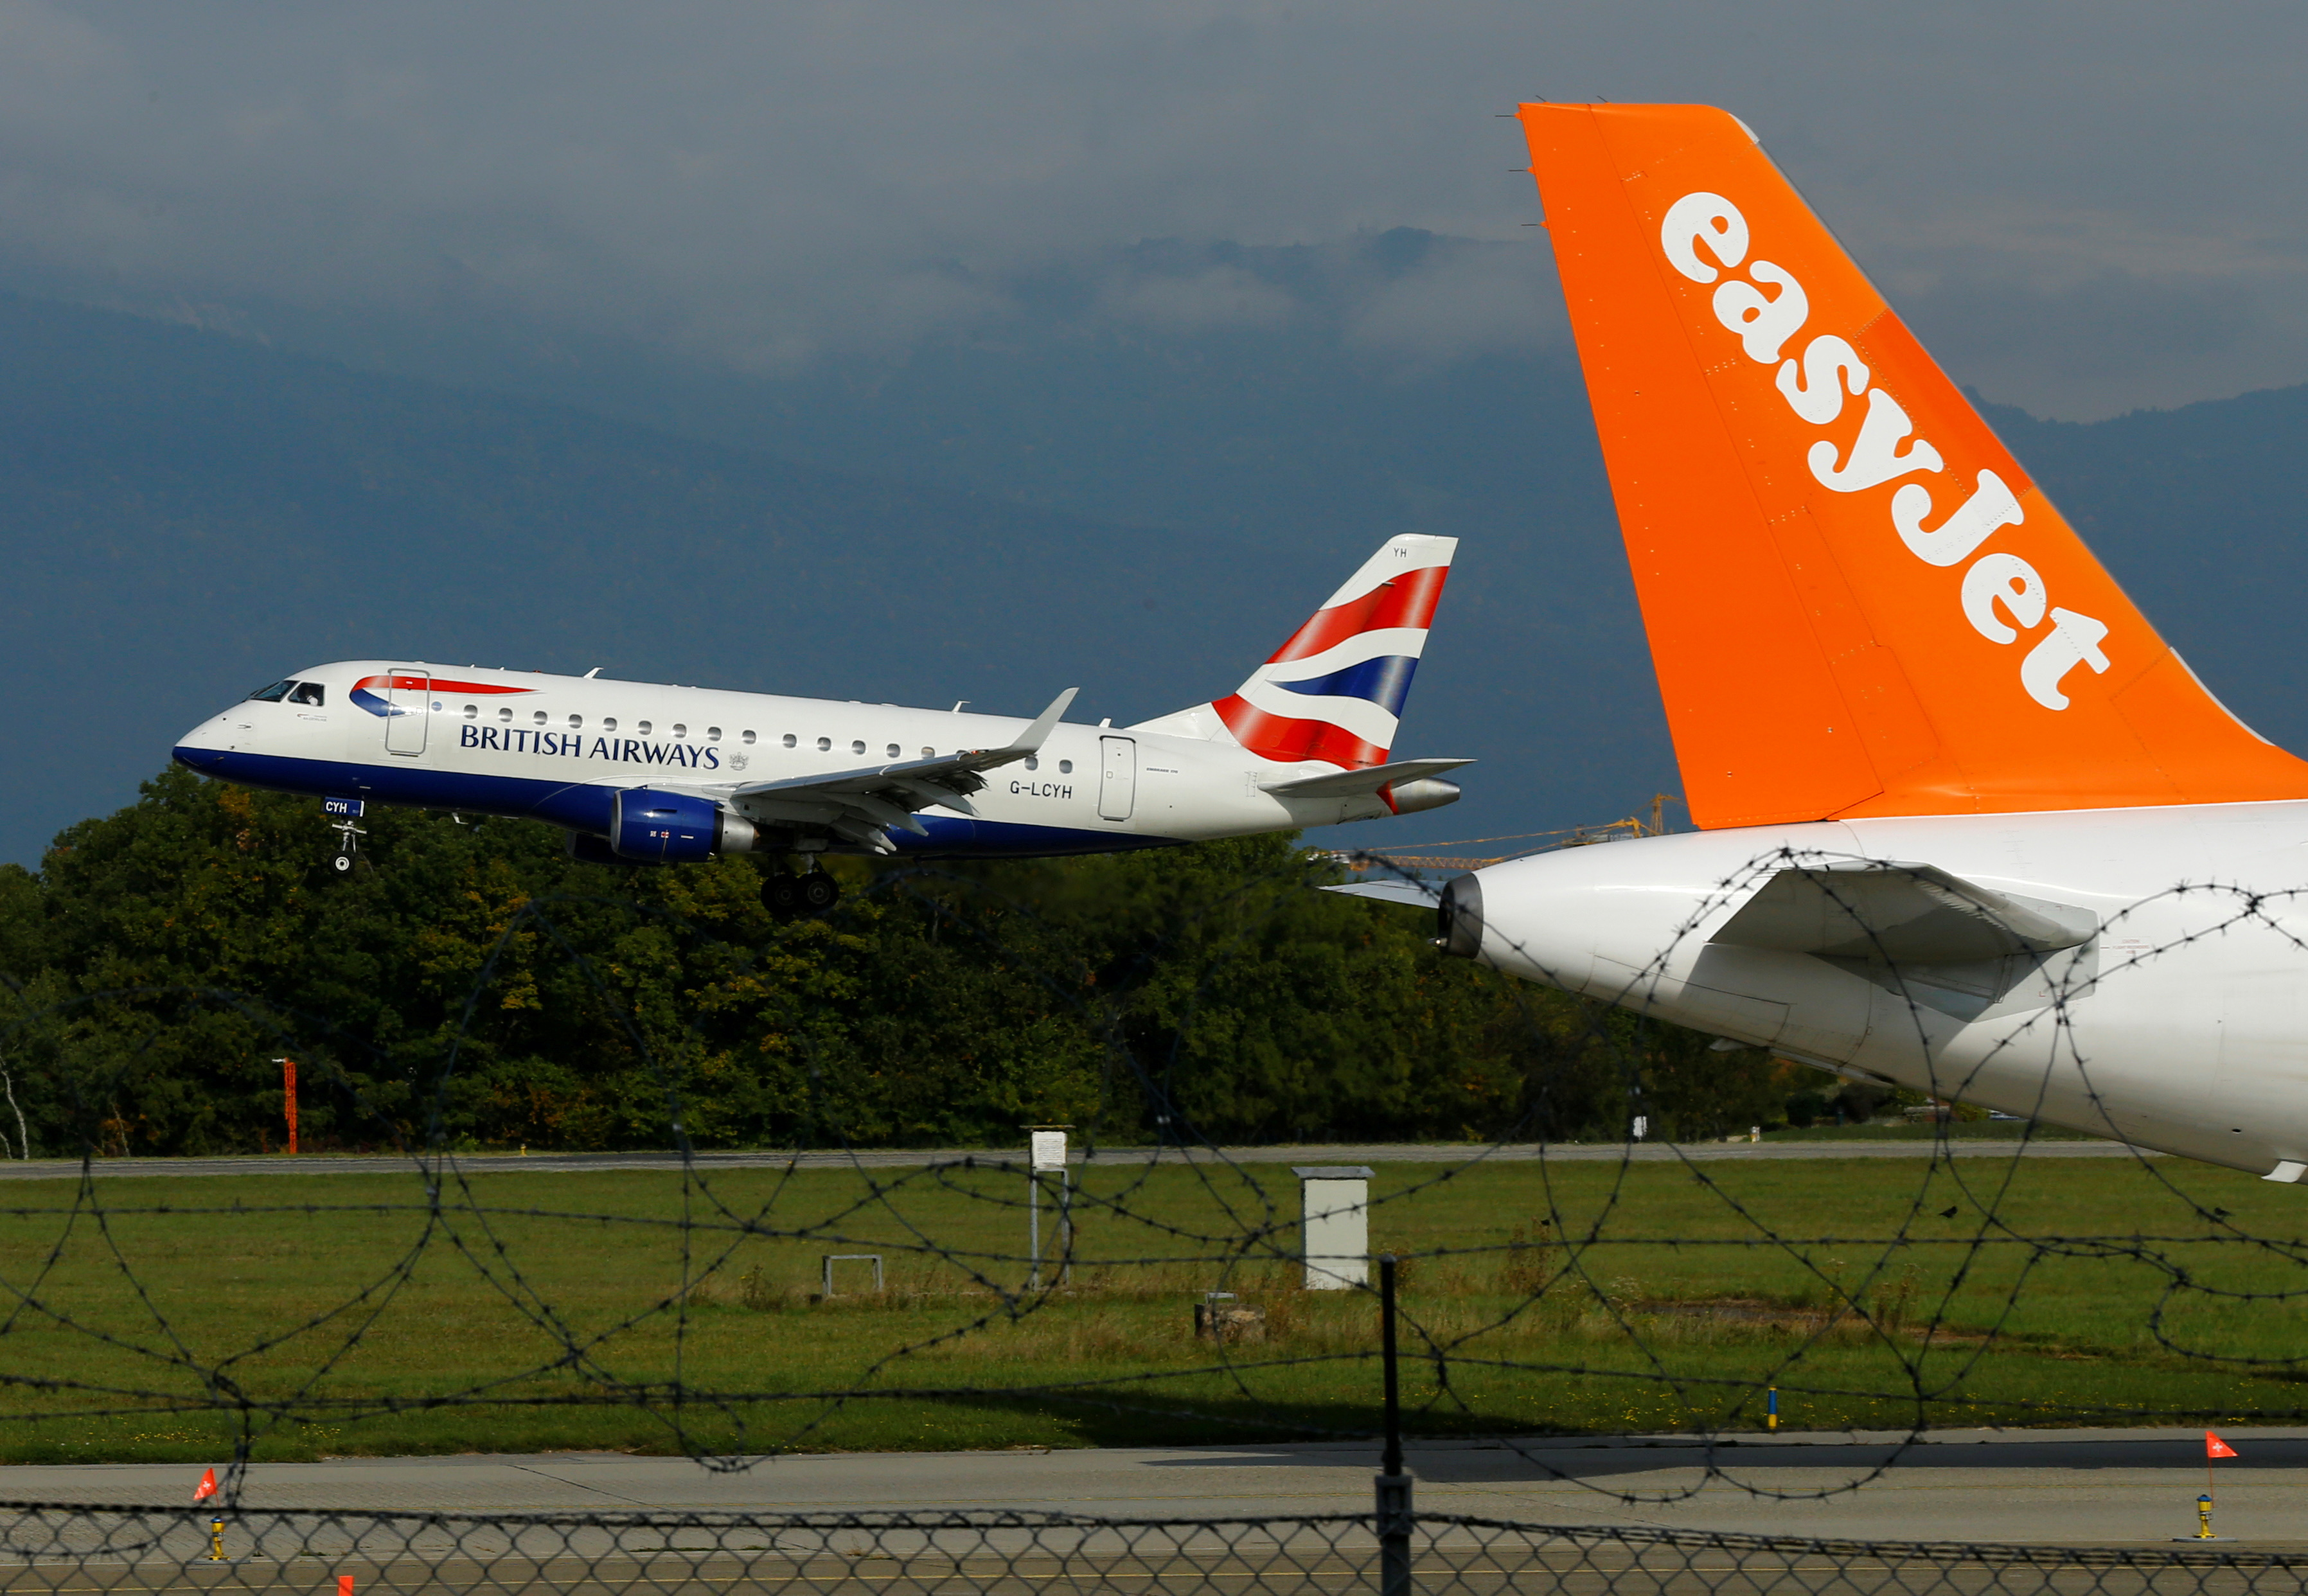 A British Airways Embraer ERJ-170STD aircraft lands next to a EasyJet plane ready for take off at Cointrin airport in Geneva, Switzerland September 26, 2017.  REUTERS/Denis Balibouse/File Photo